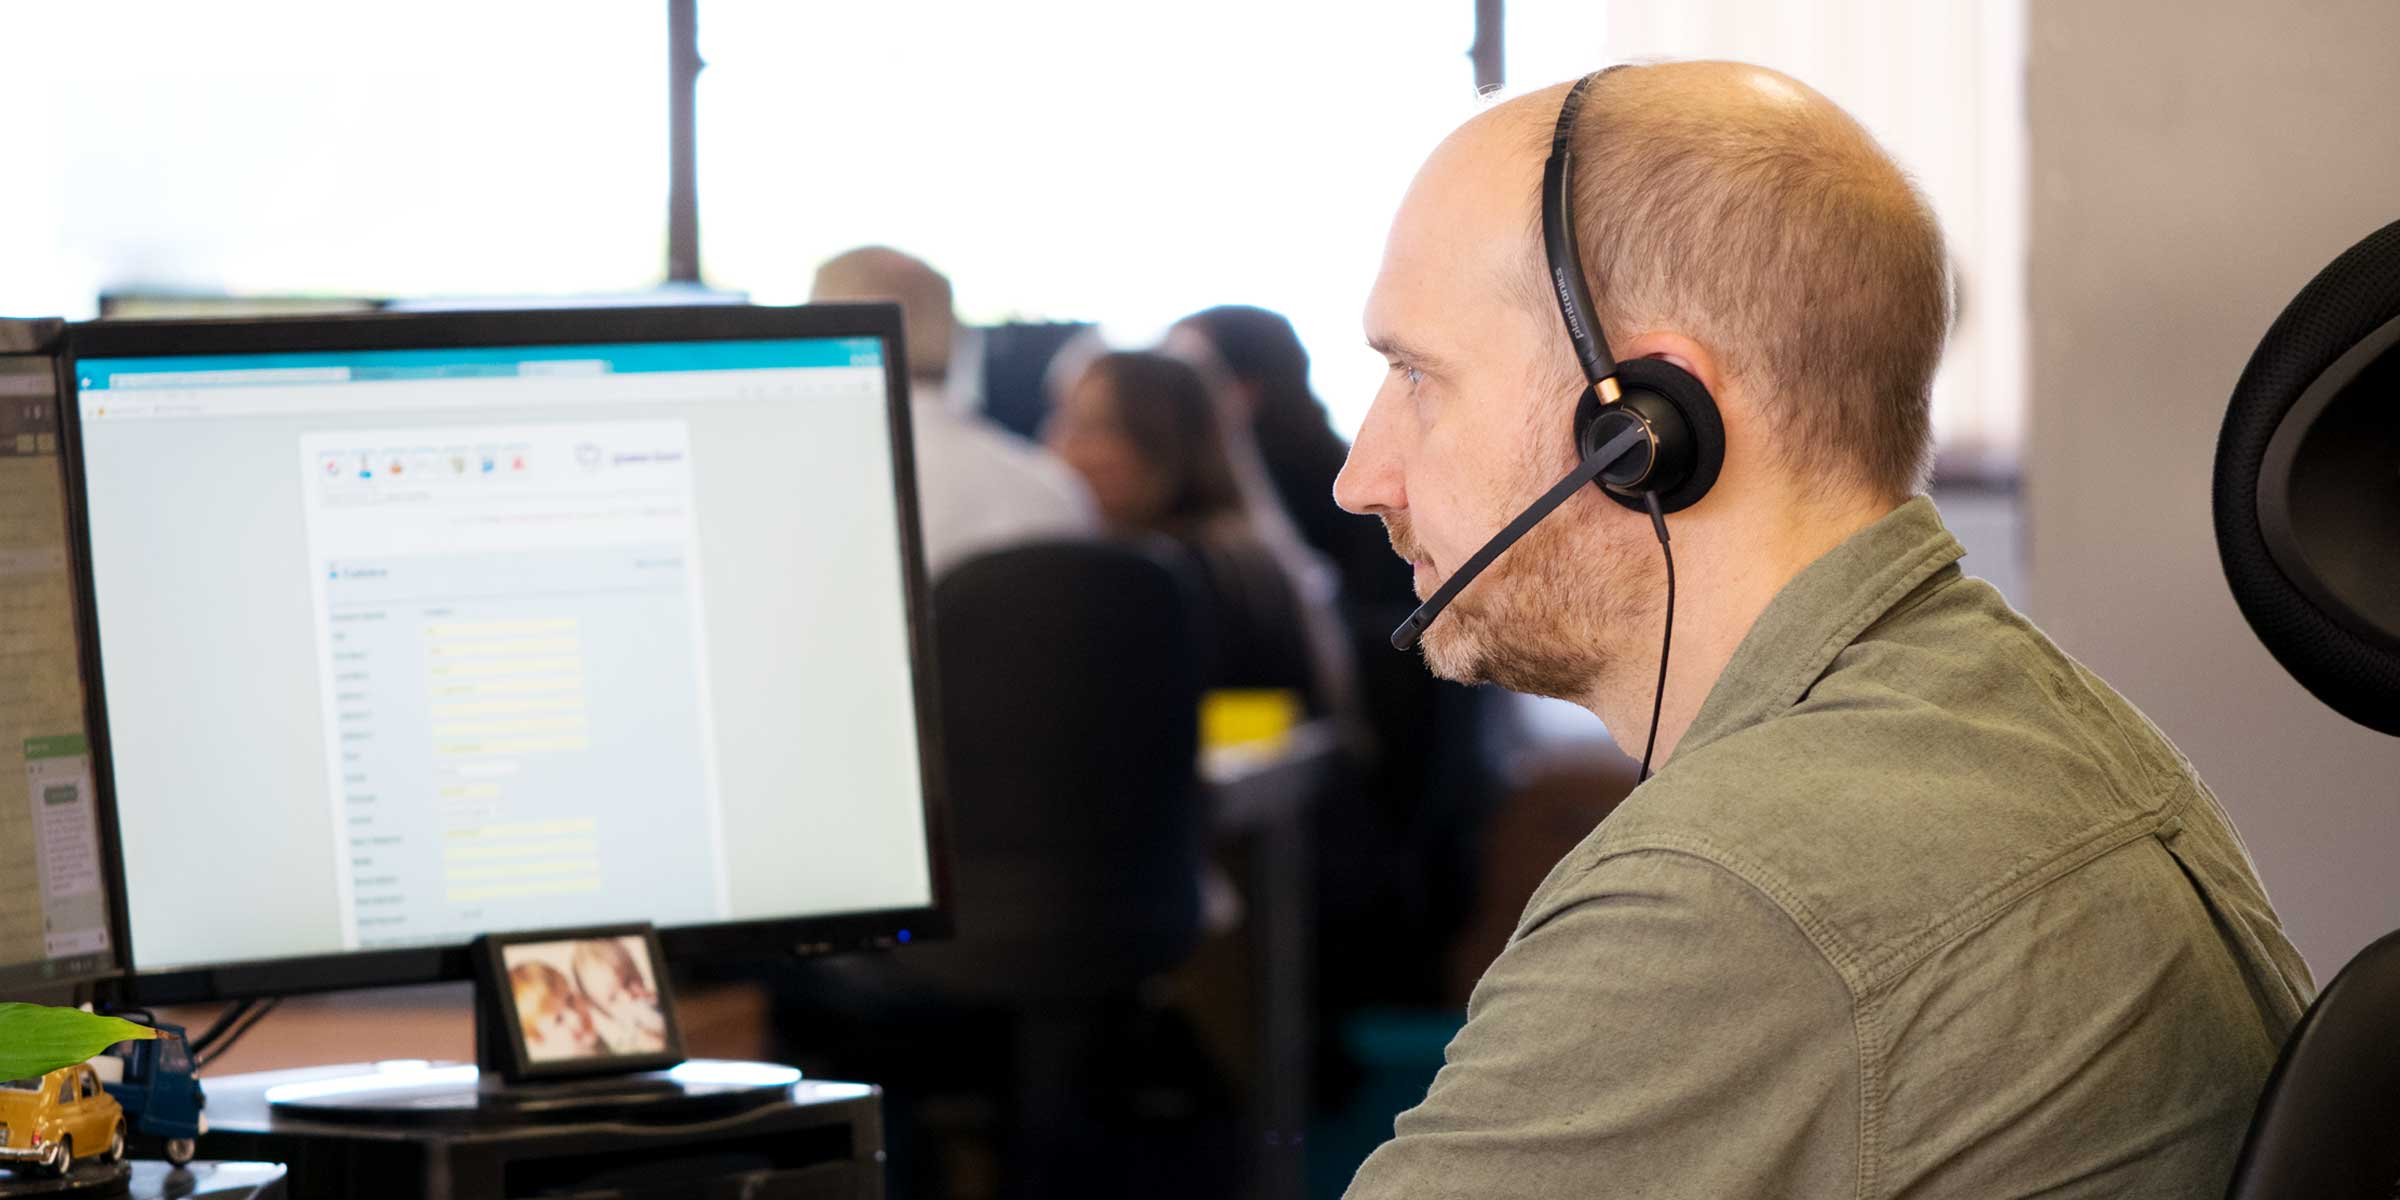 A customer service agent with a headset on and at his computer